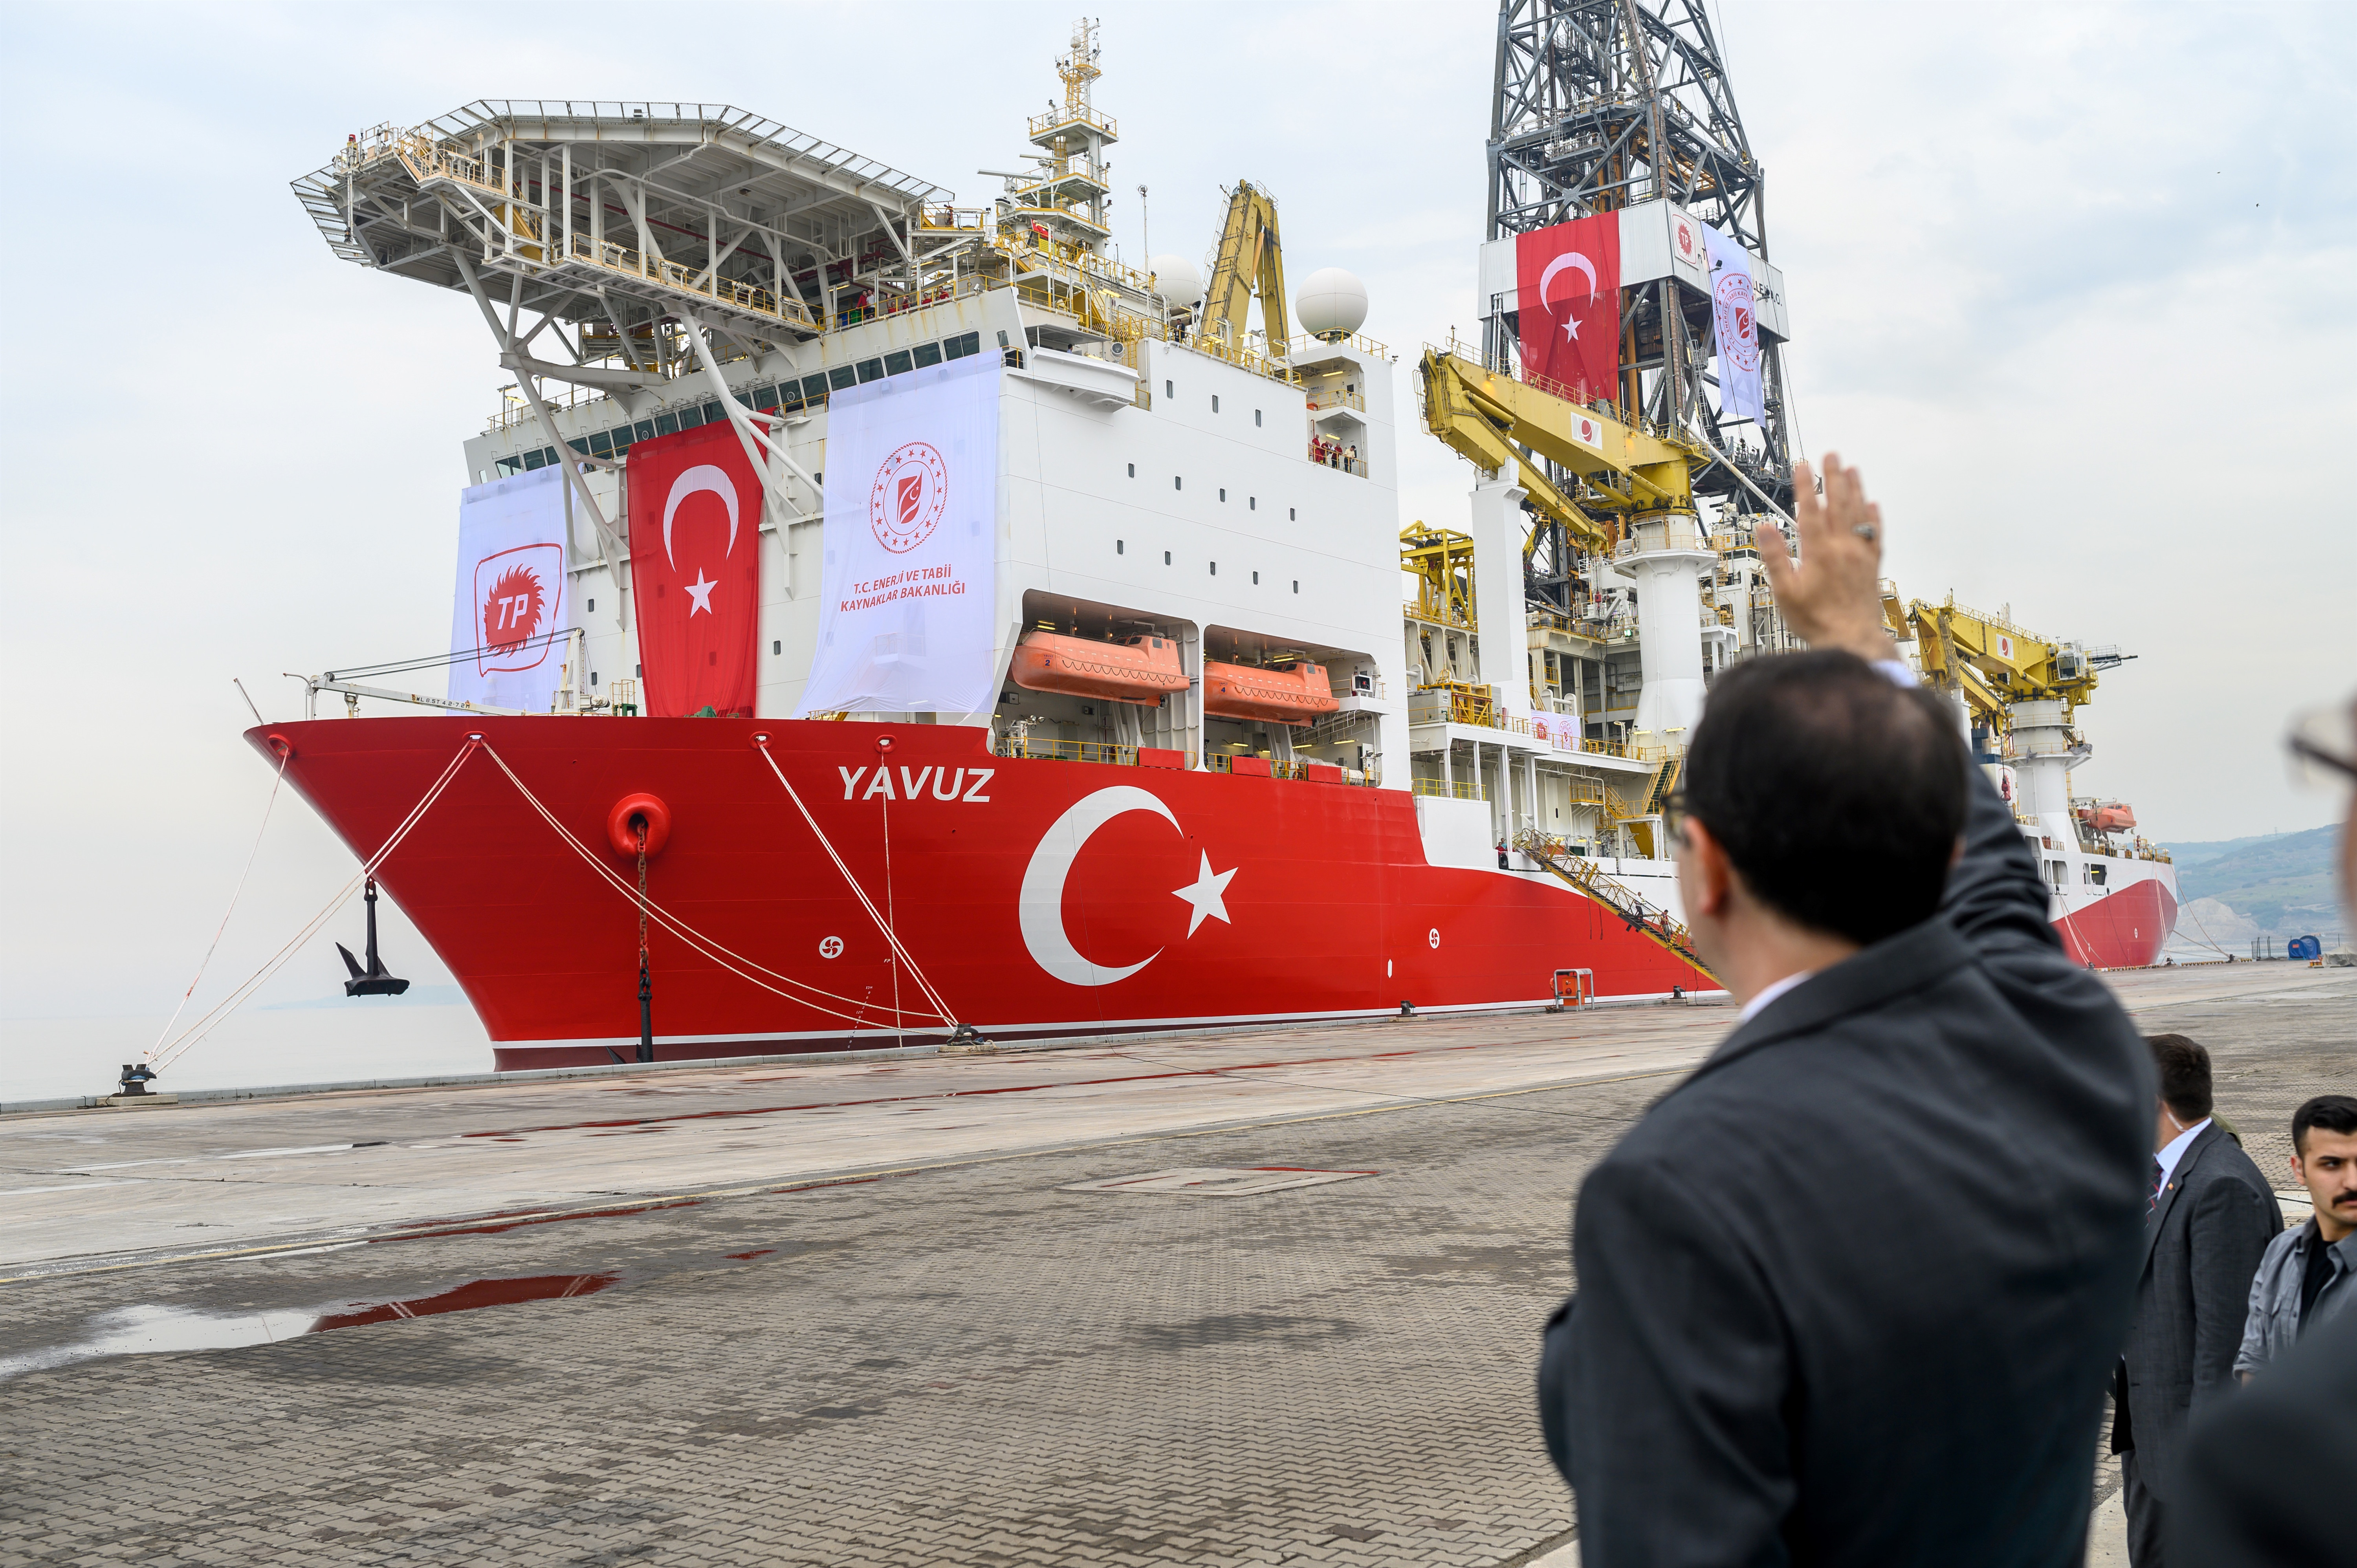 Turkey says EU's measures not to affect Turkey's energy activities near Cyprus